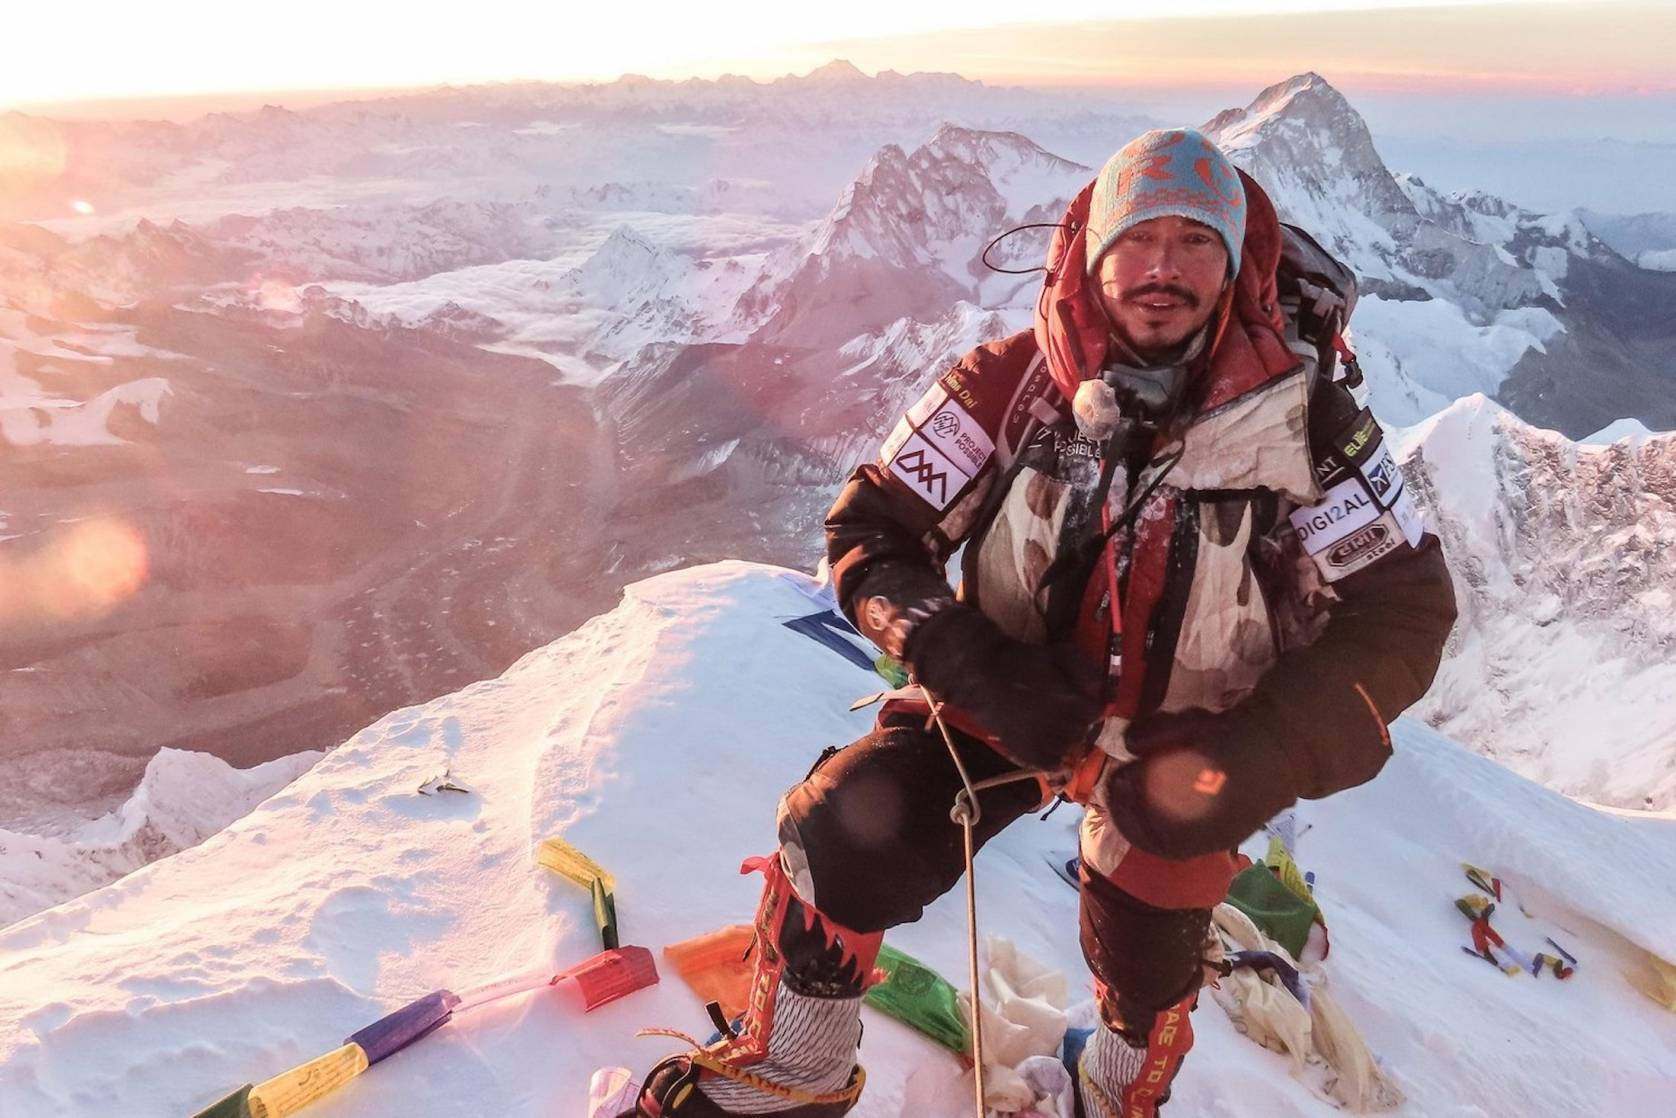 Nims Purja climbing Everest for Project Possible